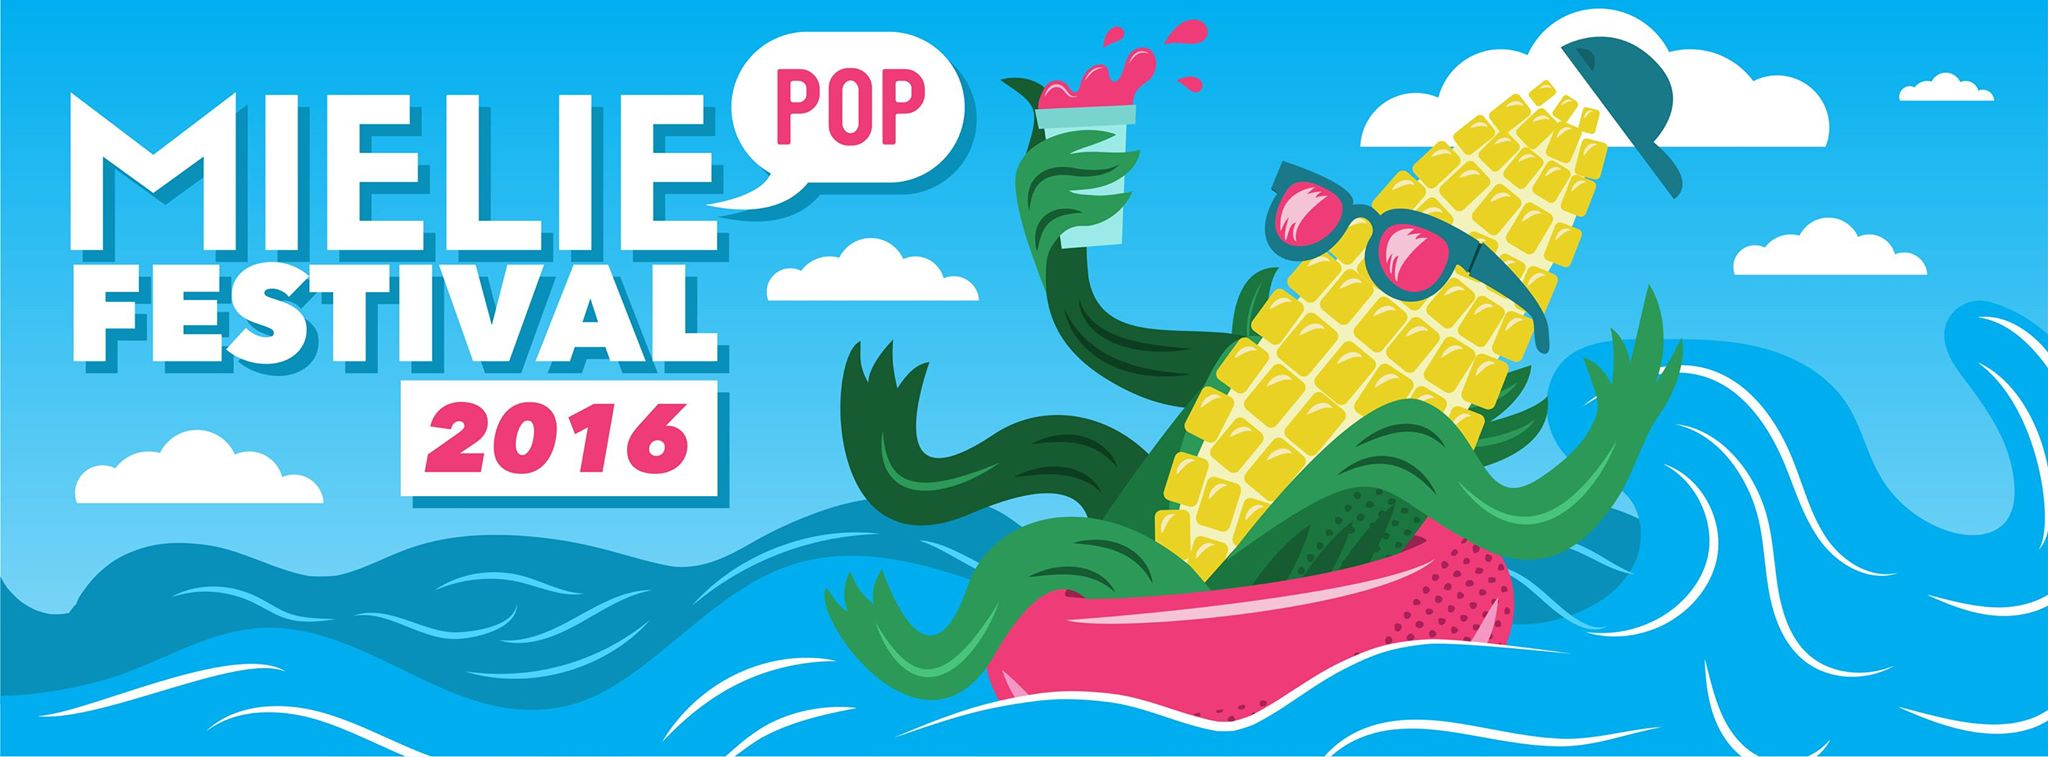 Mieliepop 2016: The full line-up & ticket giveaway